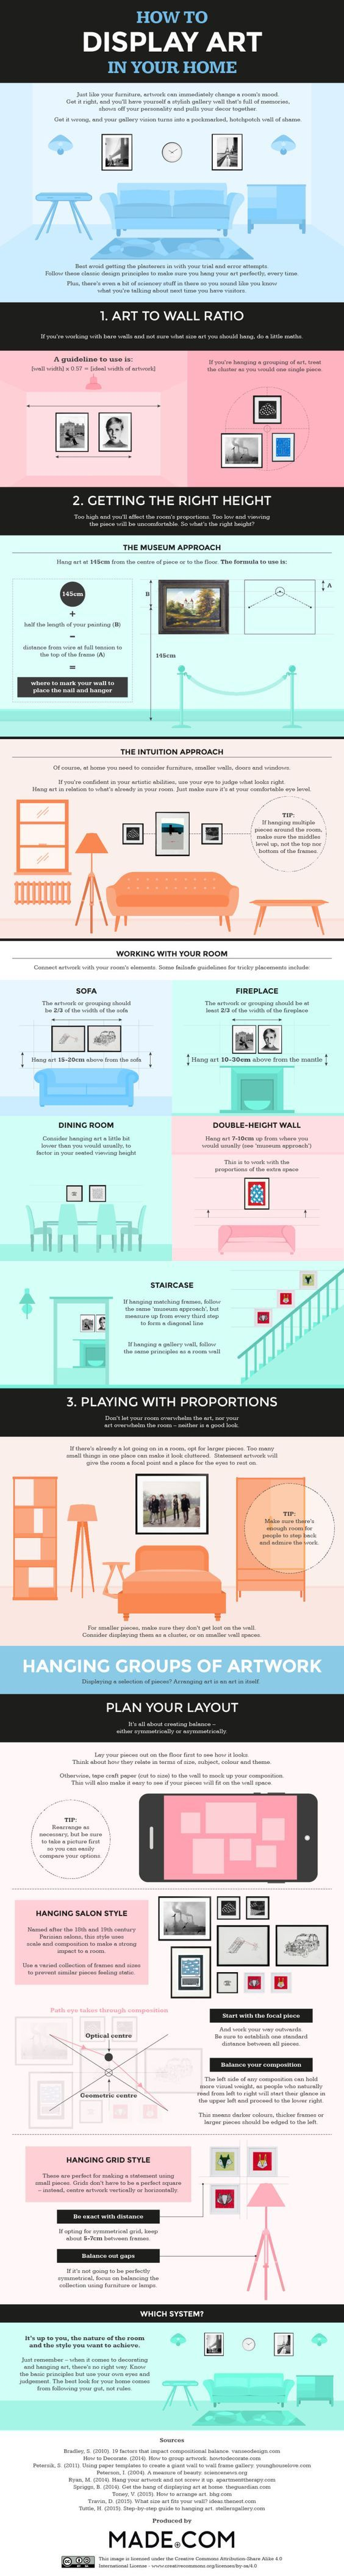 If you don't have an eye for design, you might not know where to start when it comes to putting art on your walls. You can always go with your gut, but this infographic lays out some basic rules that make it simple.